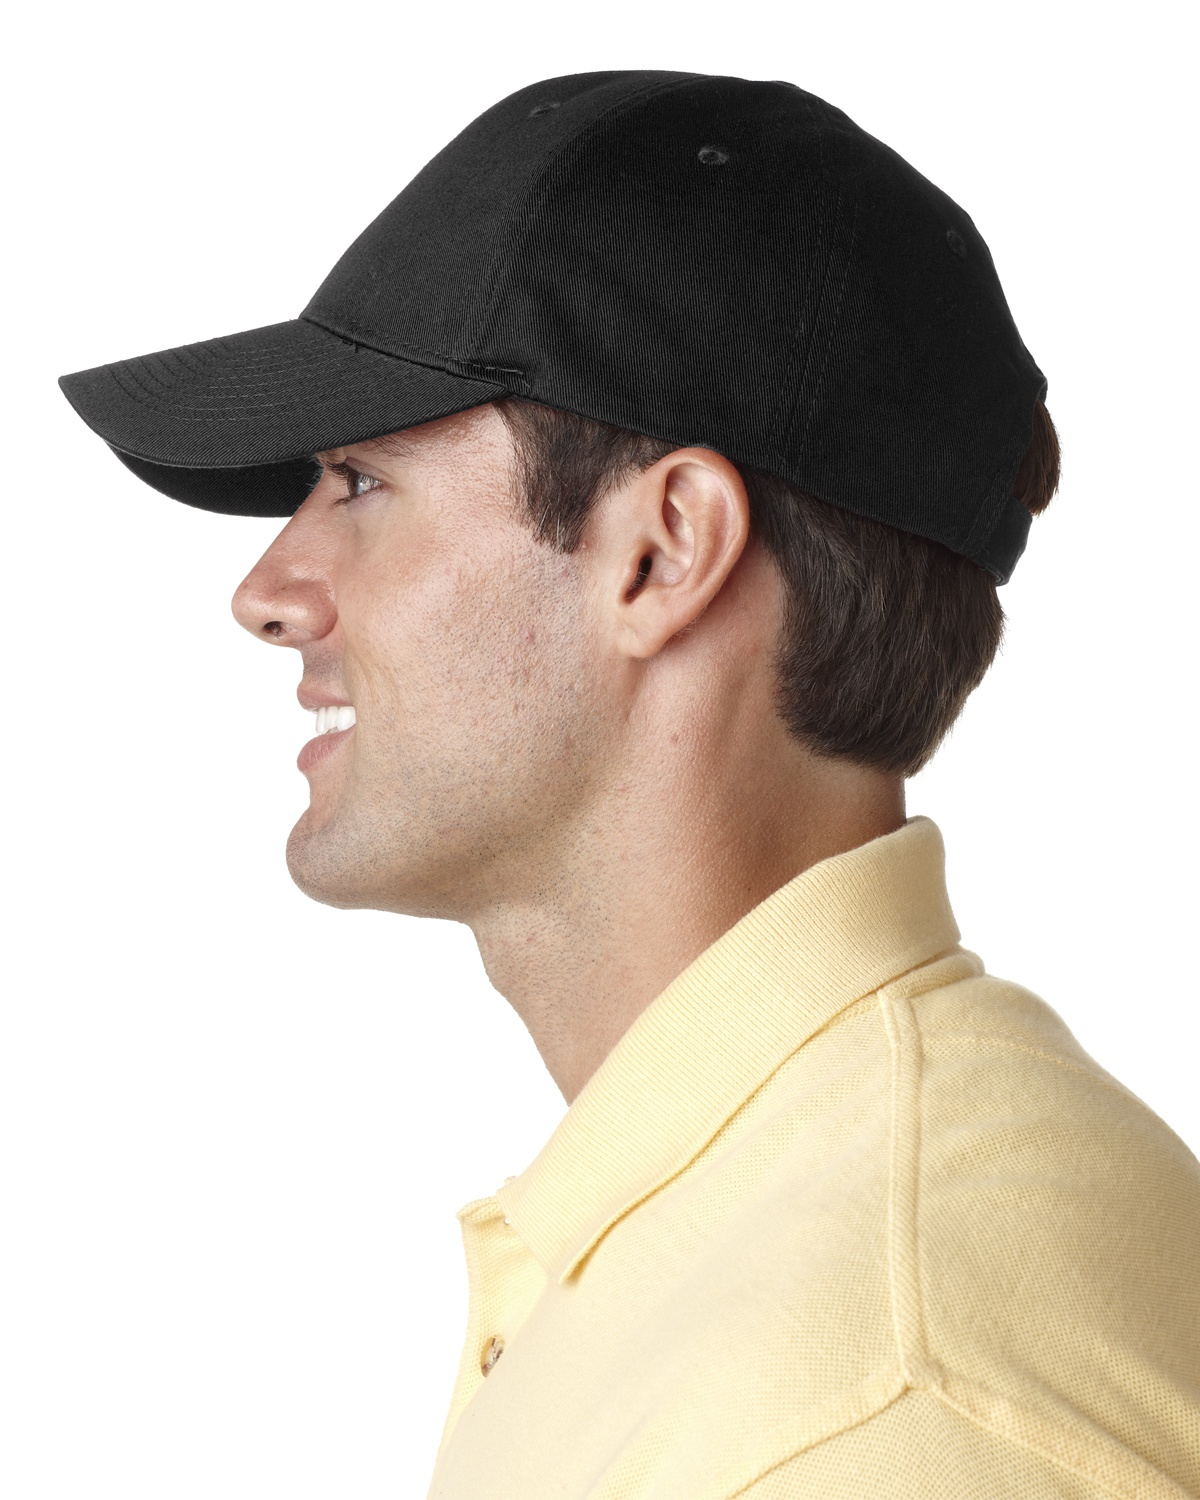 'UltraClub 8101 Adult Classic Cut Chino Cotton Twill Structured Cap'